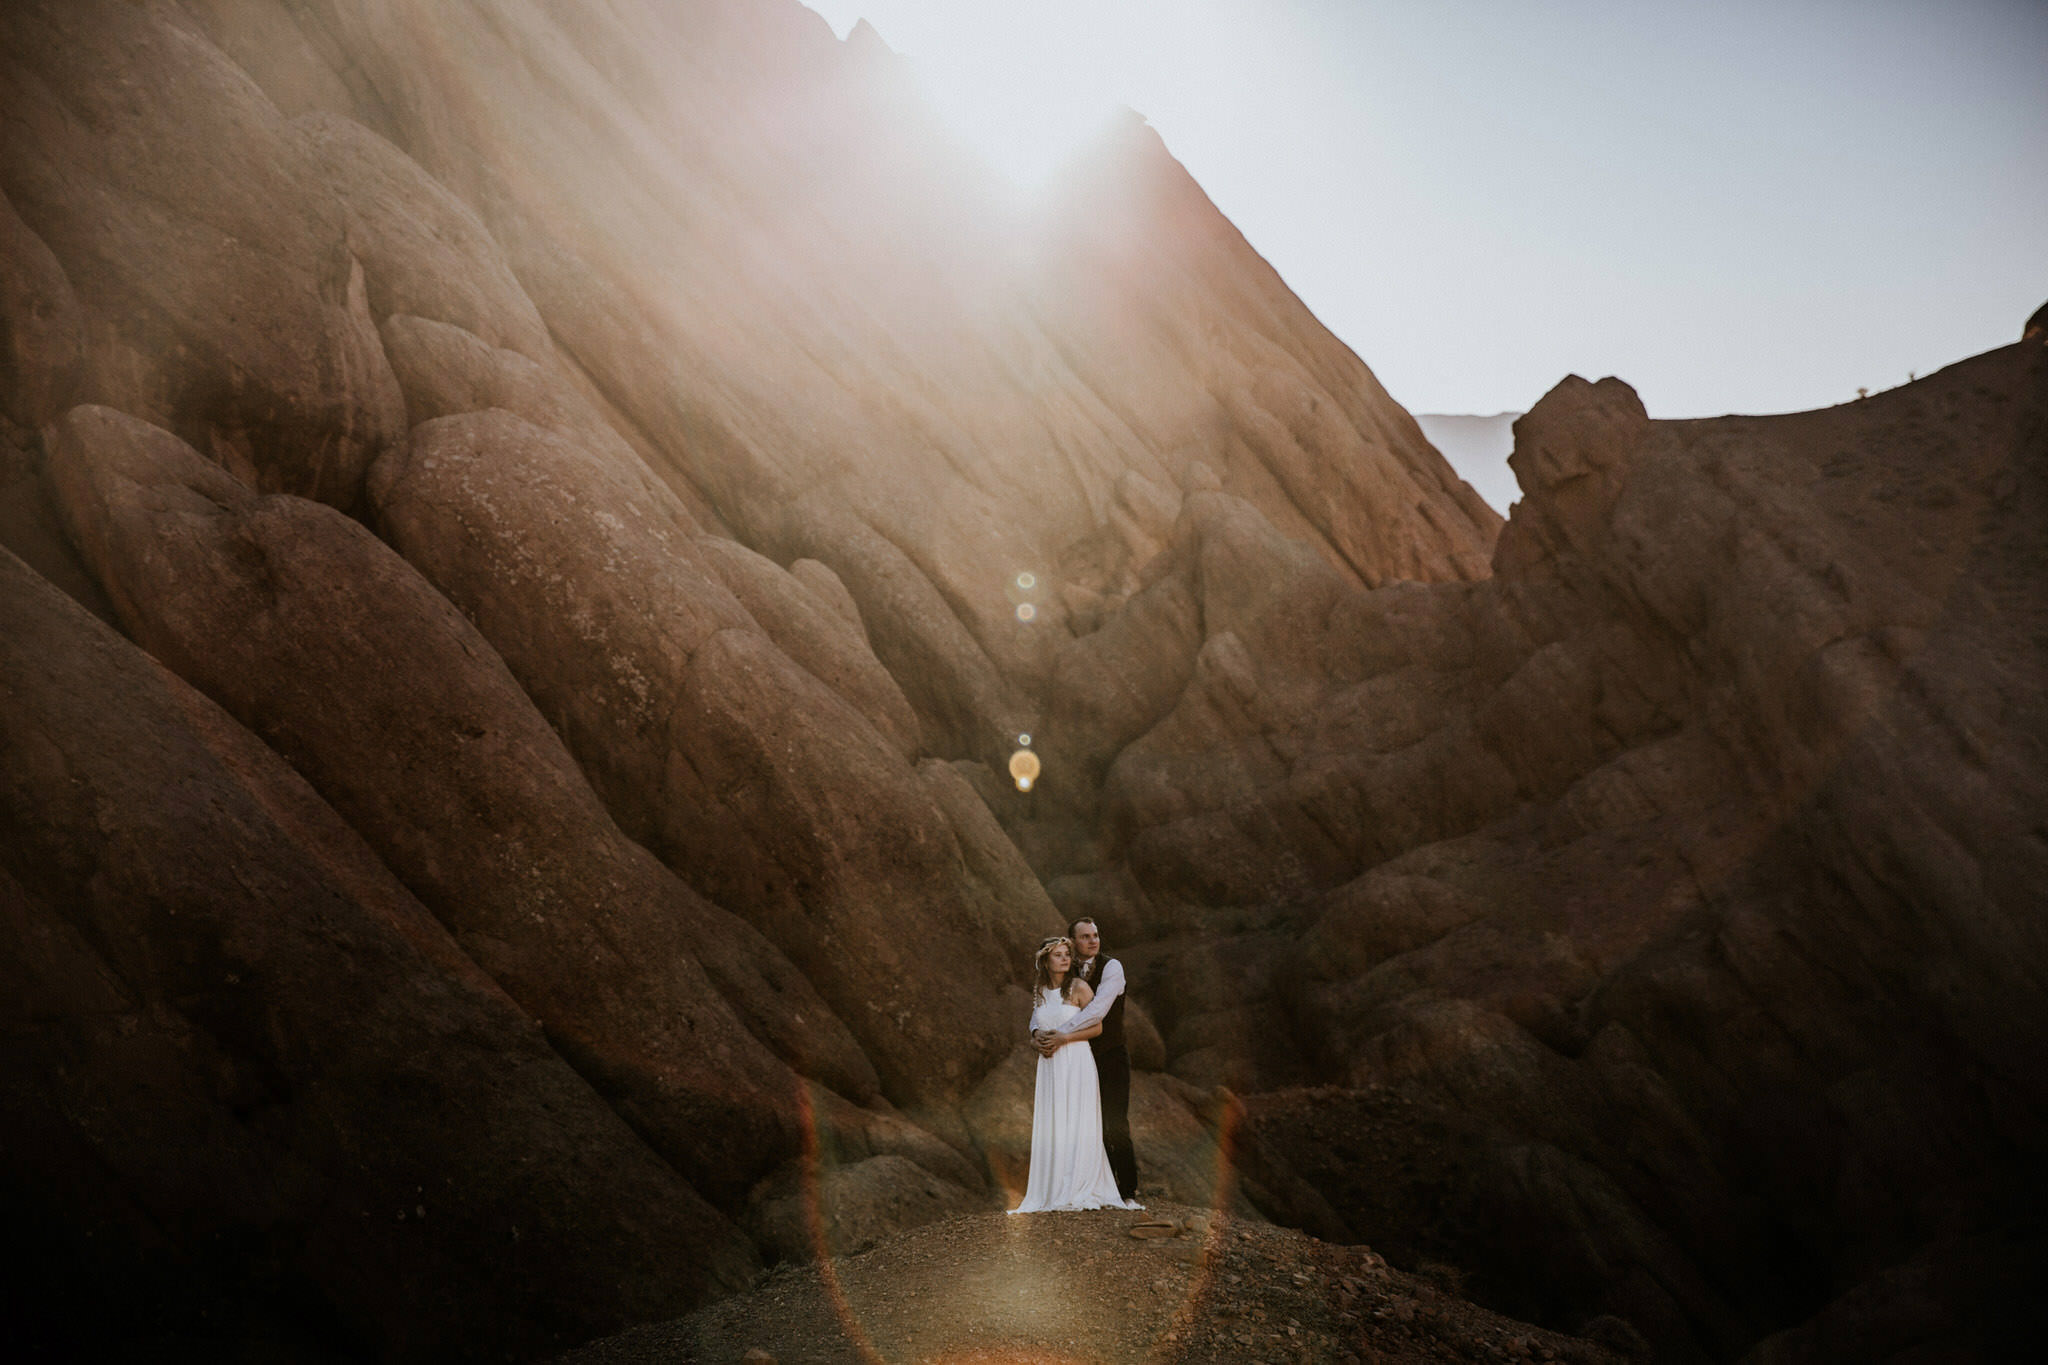 Bride and groom standing on a rocky mountain platform in the sunshine - elopement in the Atlas Mountains, Morocco